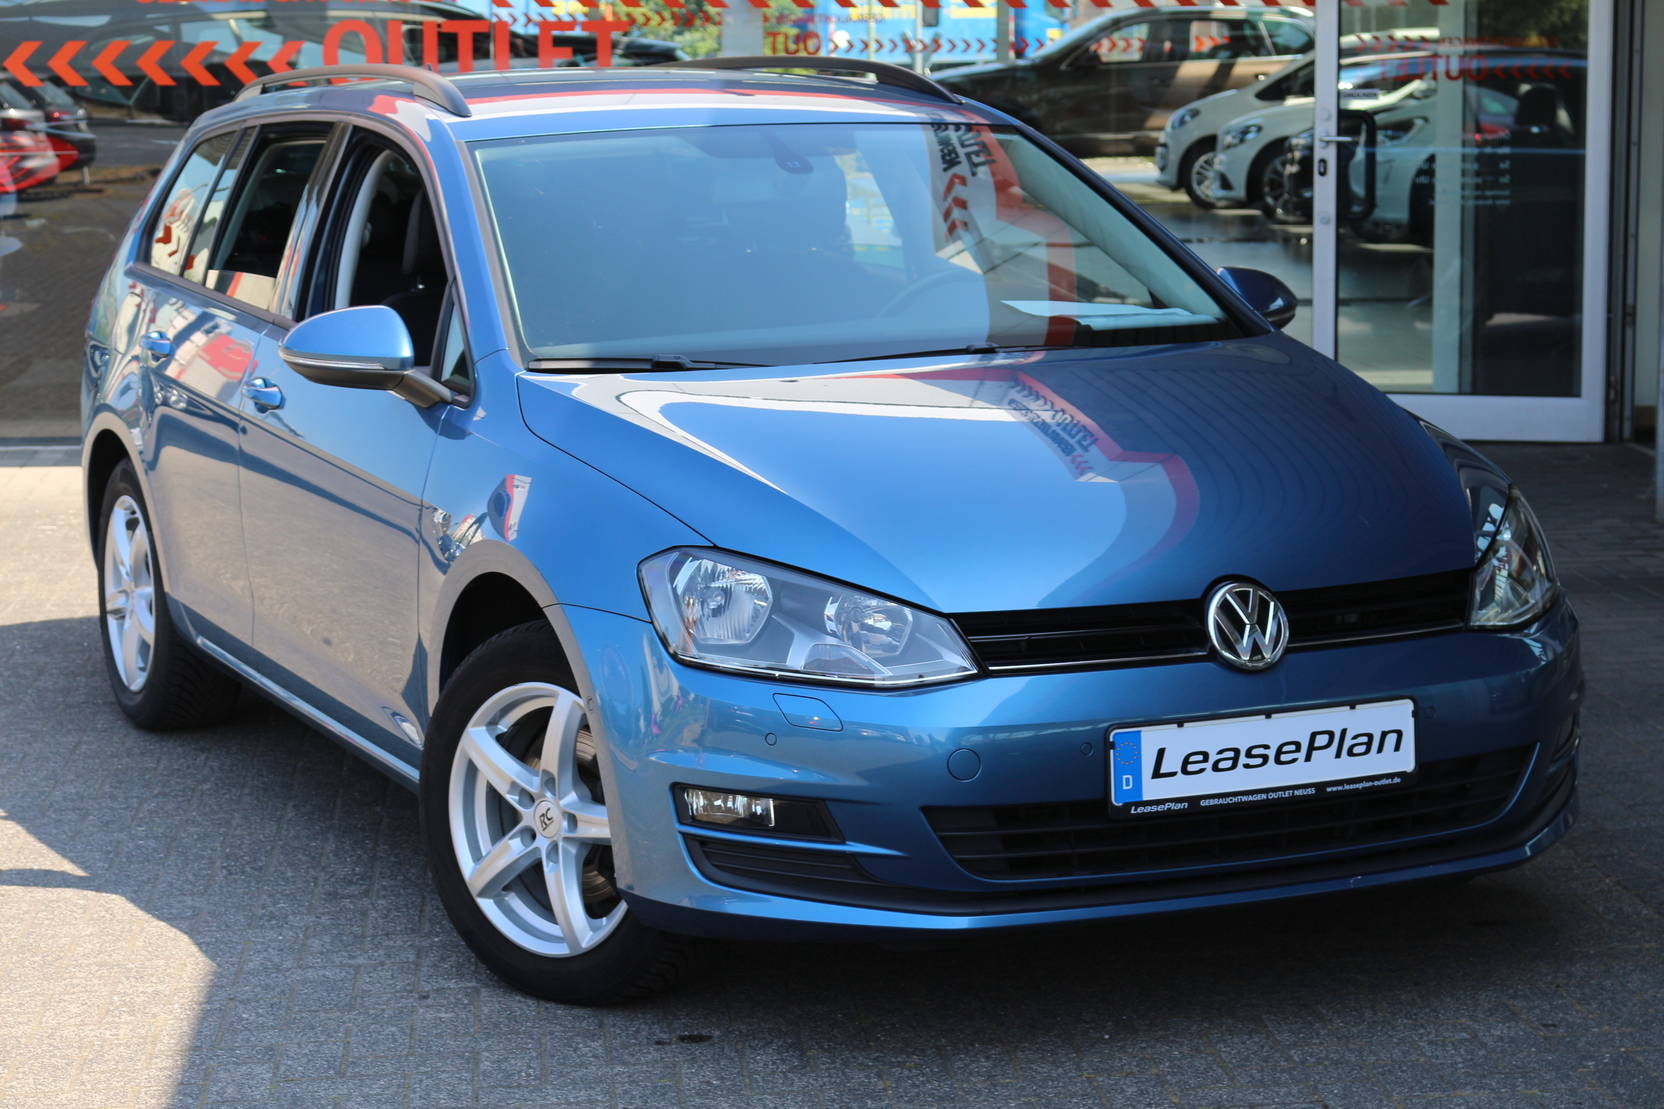 Volkswagen Golf Golf Variant 1.4 TSI BlueMotion Technology Comfortline (506828) detail1